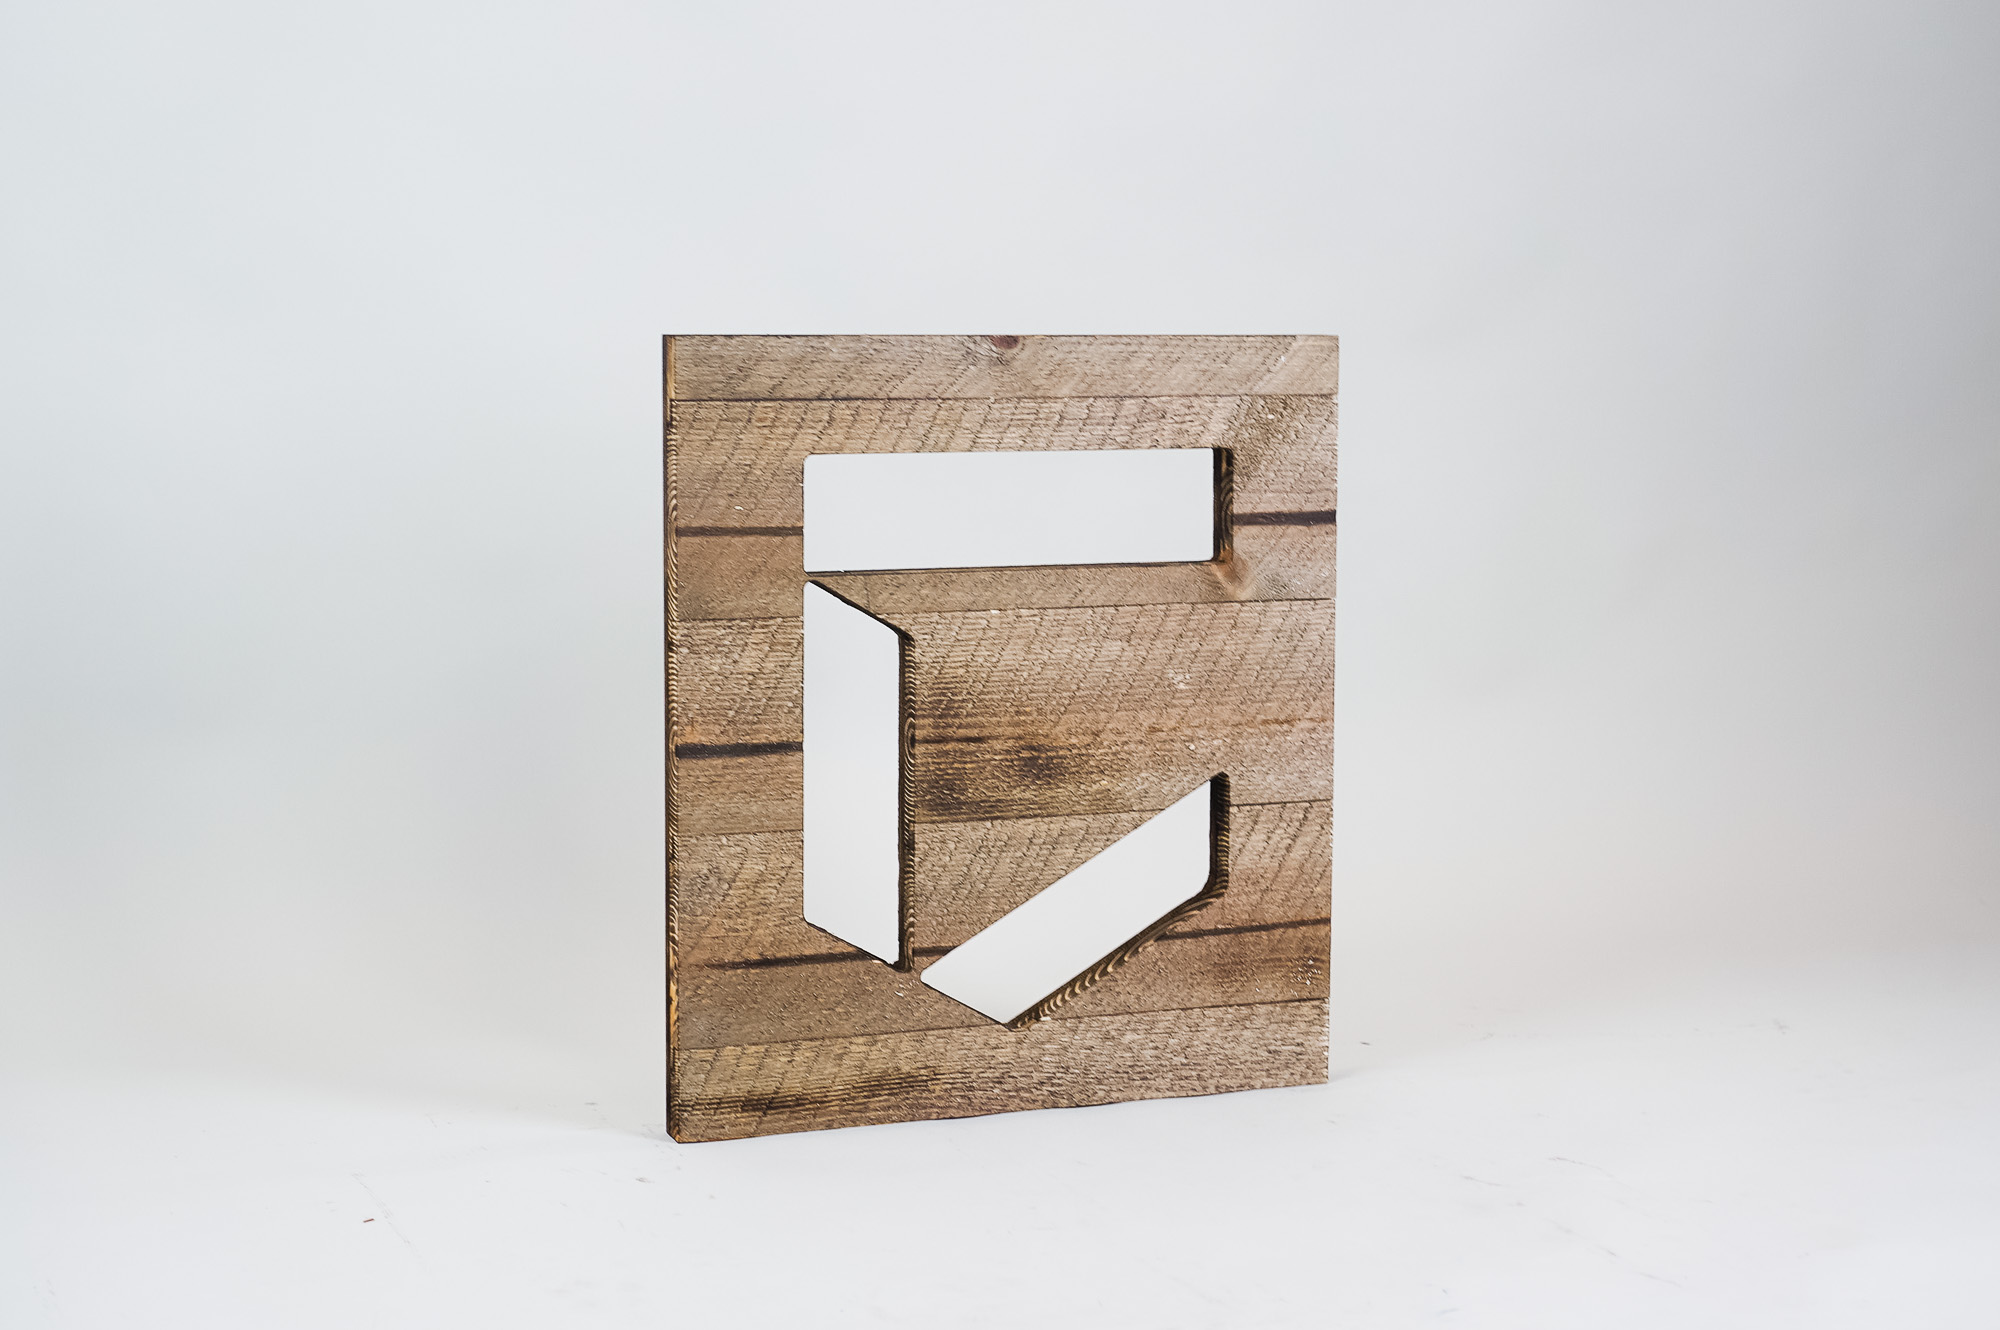 Rustic wood freestanding tabletop logo and letters for a sales conference for Chronicle Security, a cybersecurity company based in Mountain View, California.